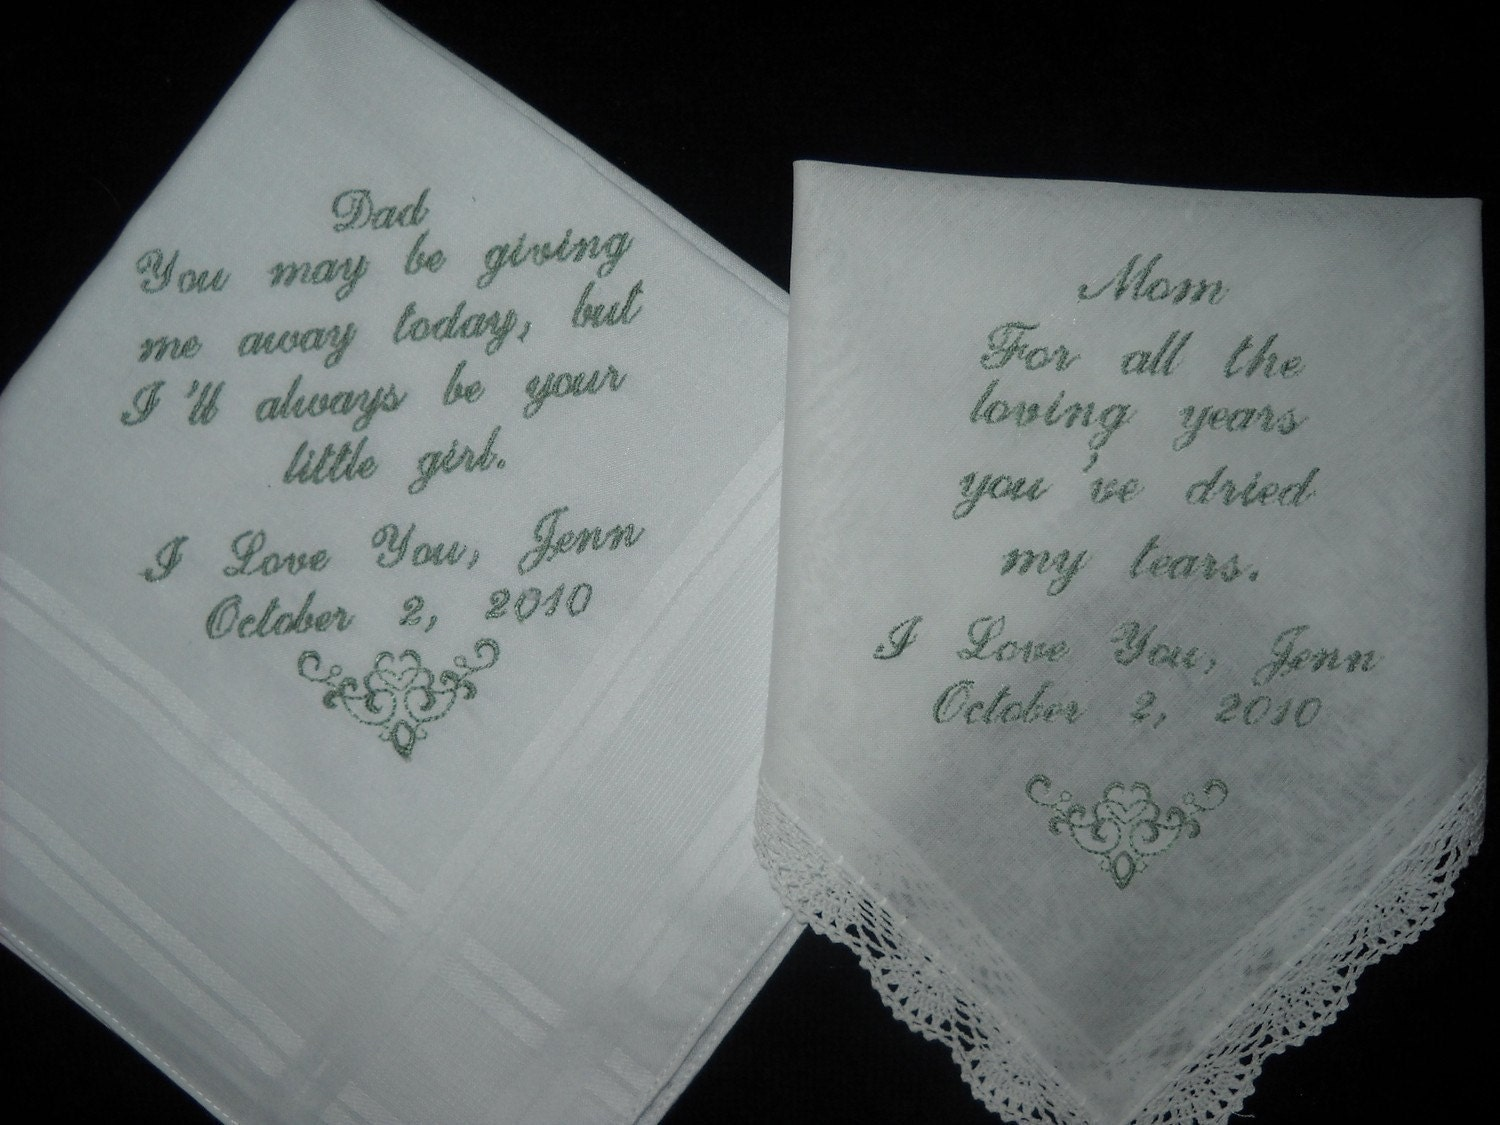 Wedding Handkerchiefs For The Family: 2 Wedding Handkerchief For Parents Of The Bride Or Groom Poems